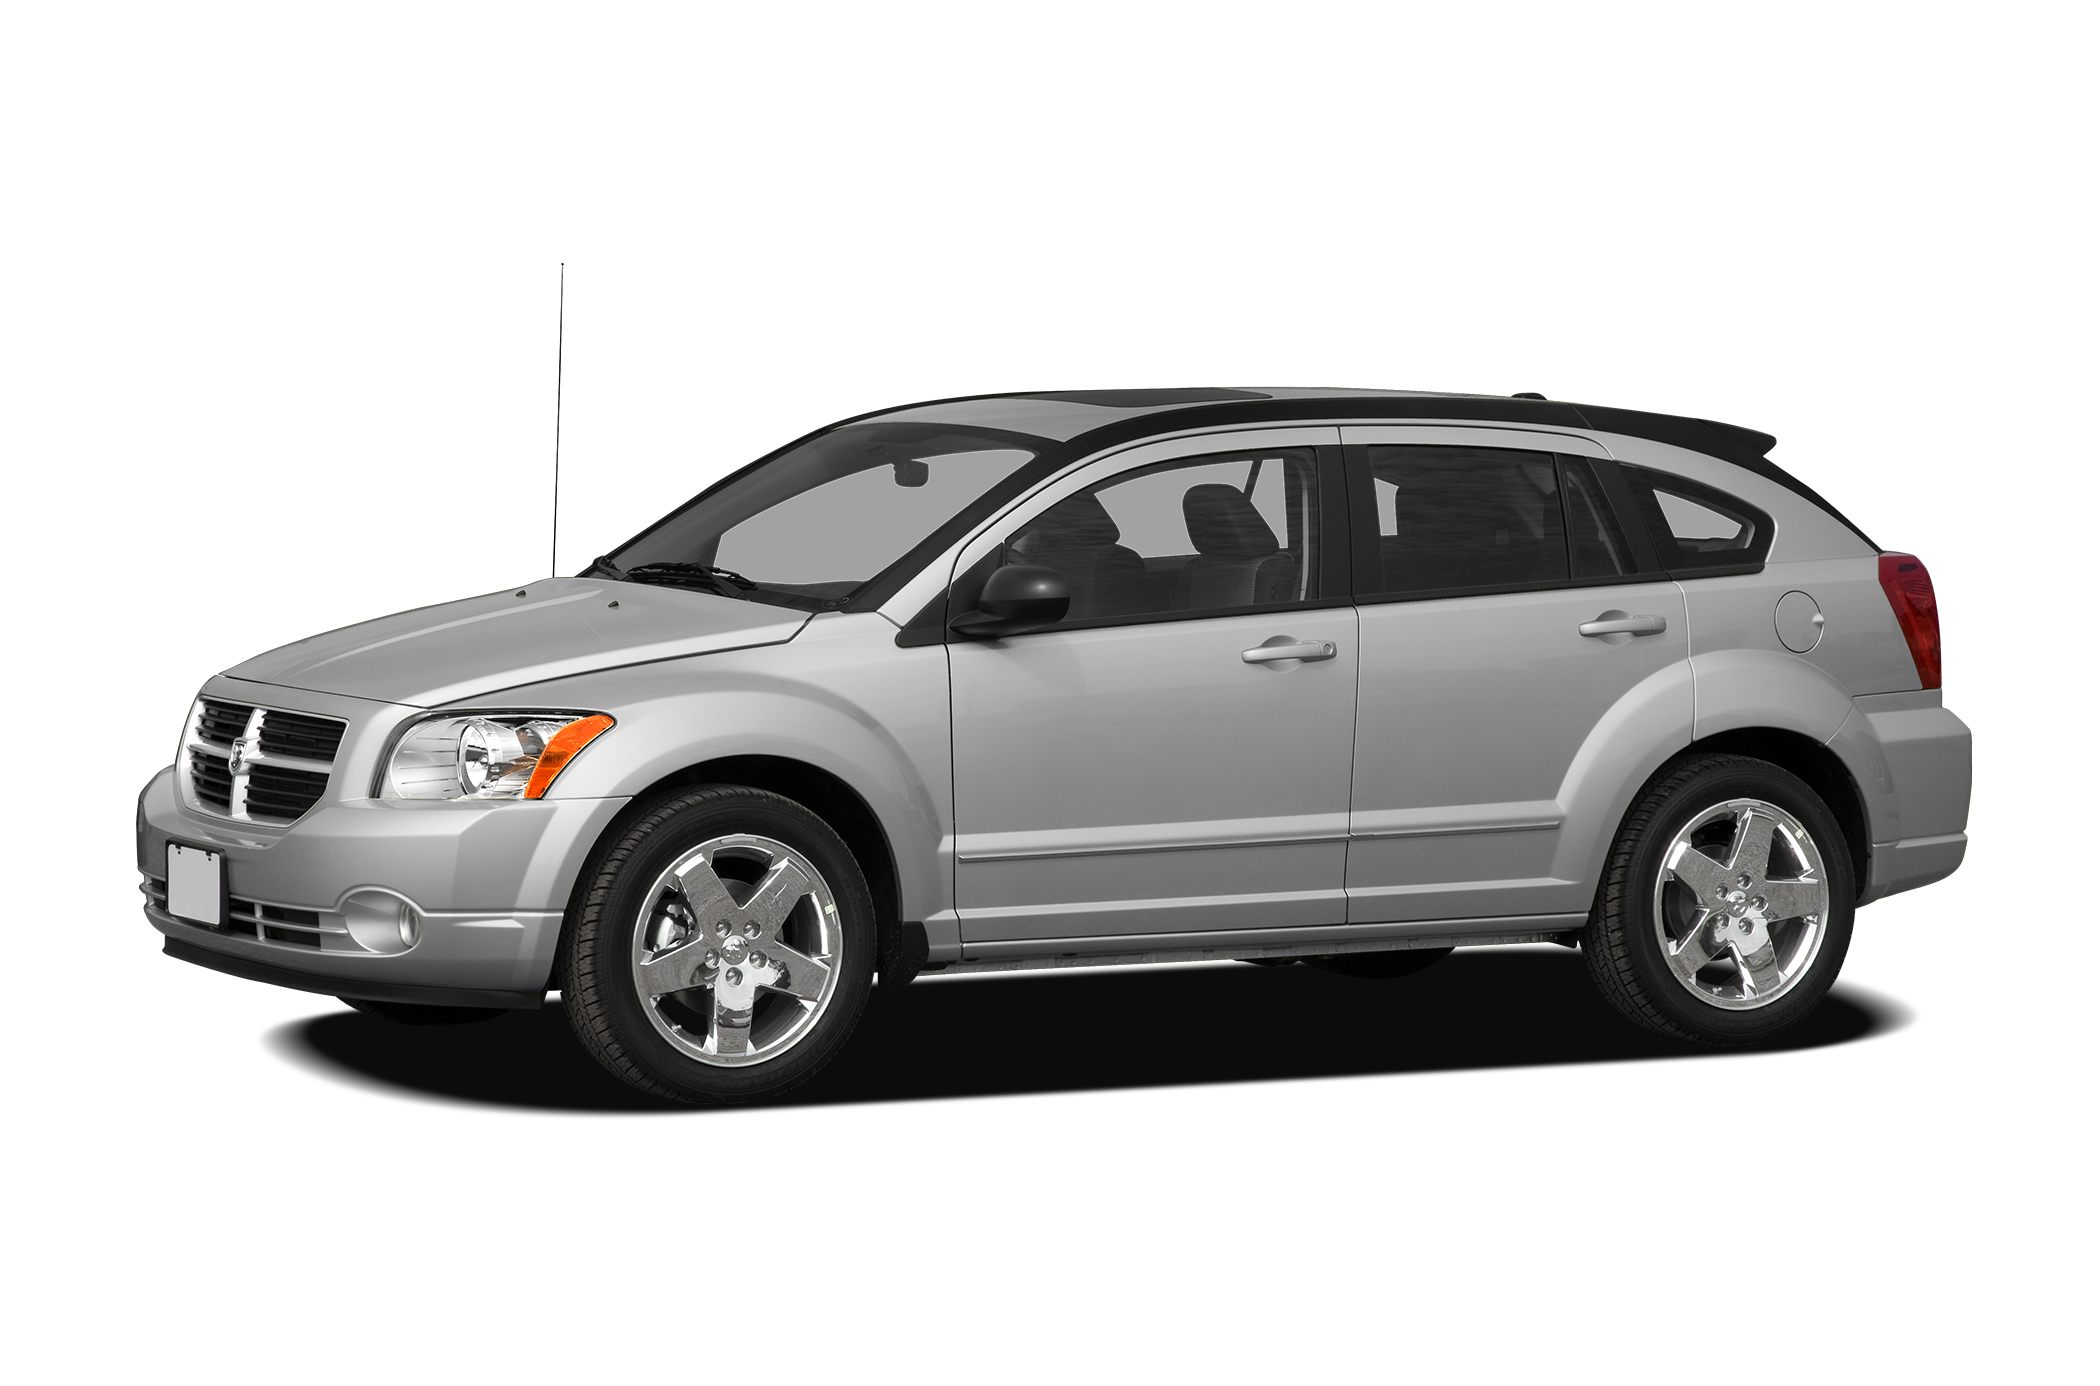 2009 Dodge Caliber SXT Hatchback for sale in Lebanon for $7,395 with 92,112 miles.